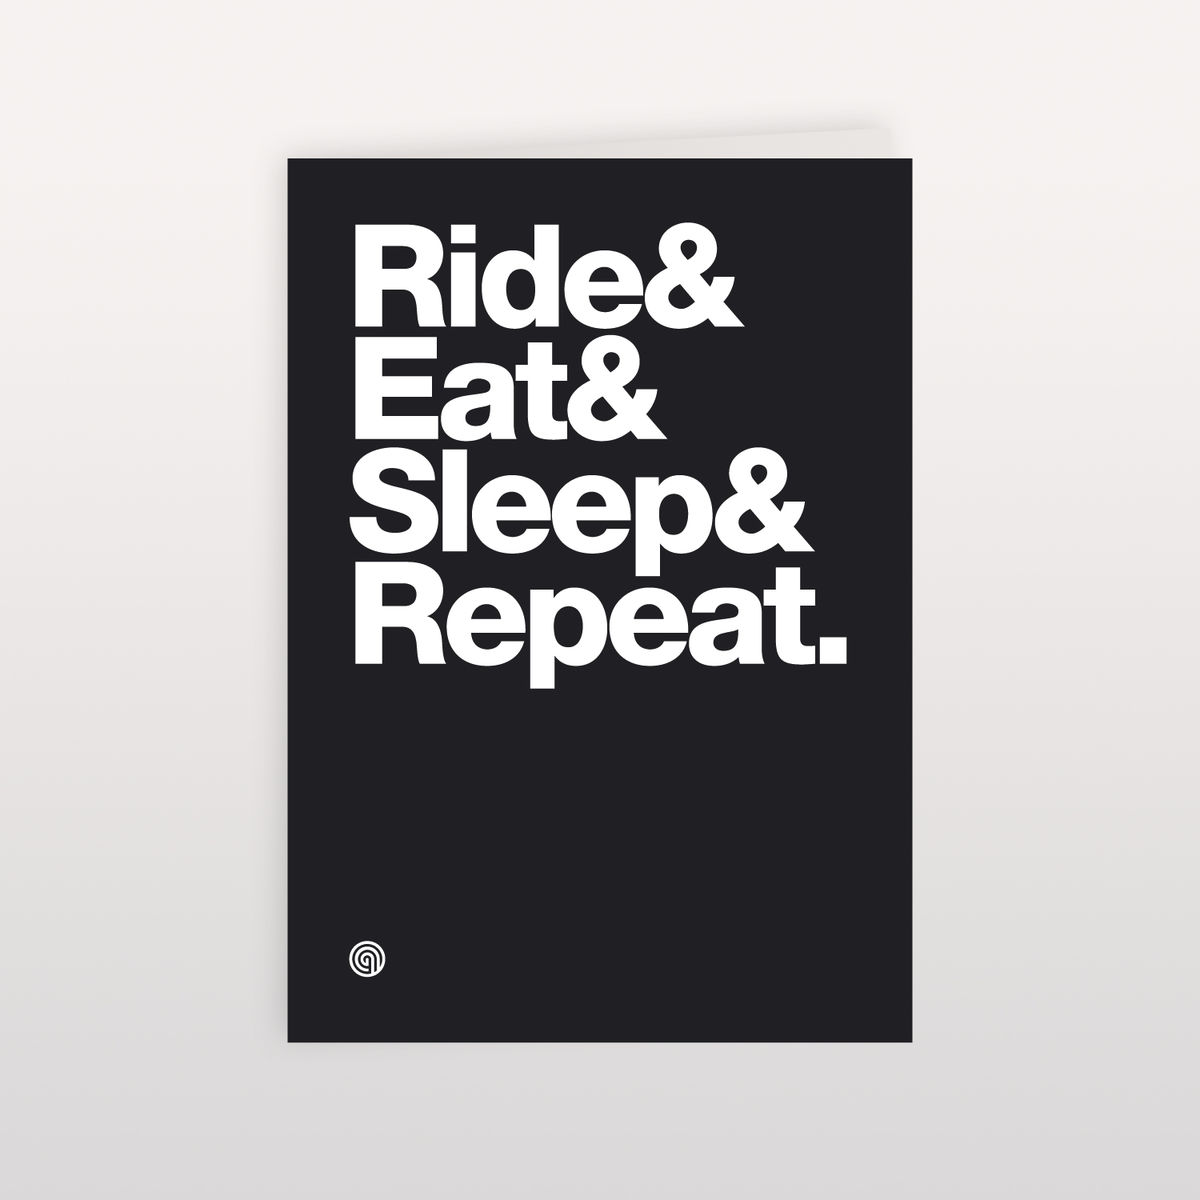 Ride&Eat&Sleep&Repeat 120x170mm - Greeting Card - product image